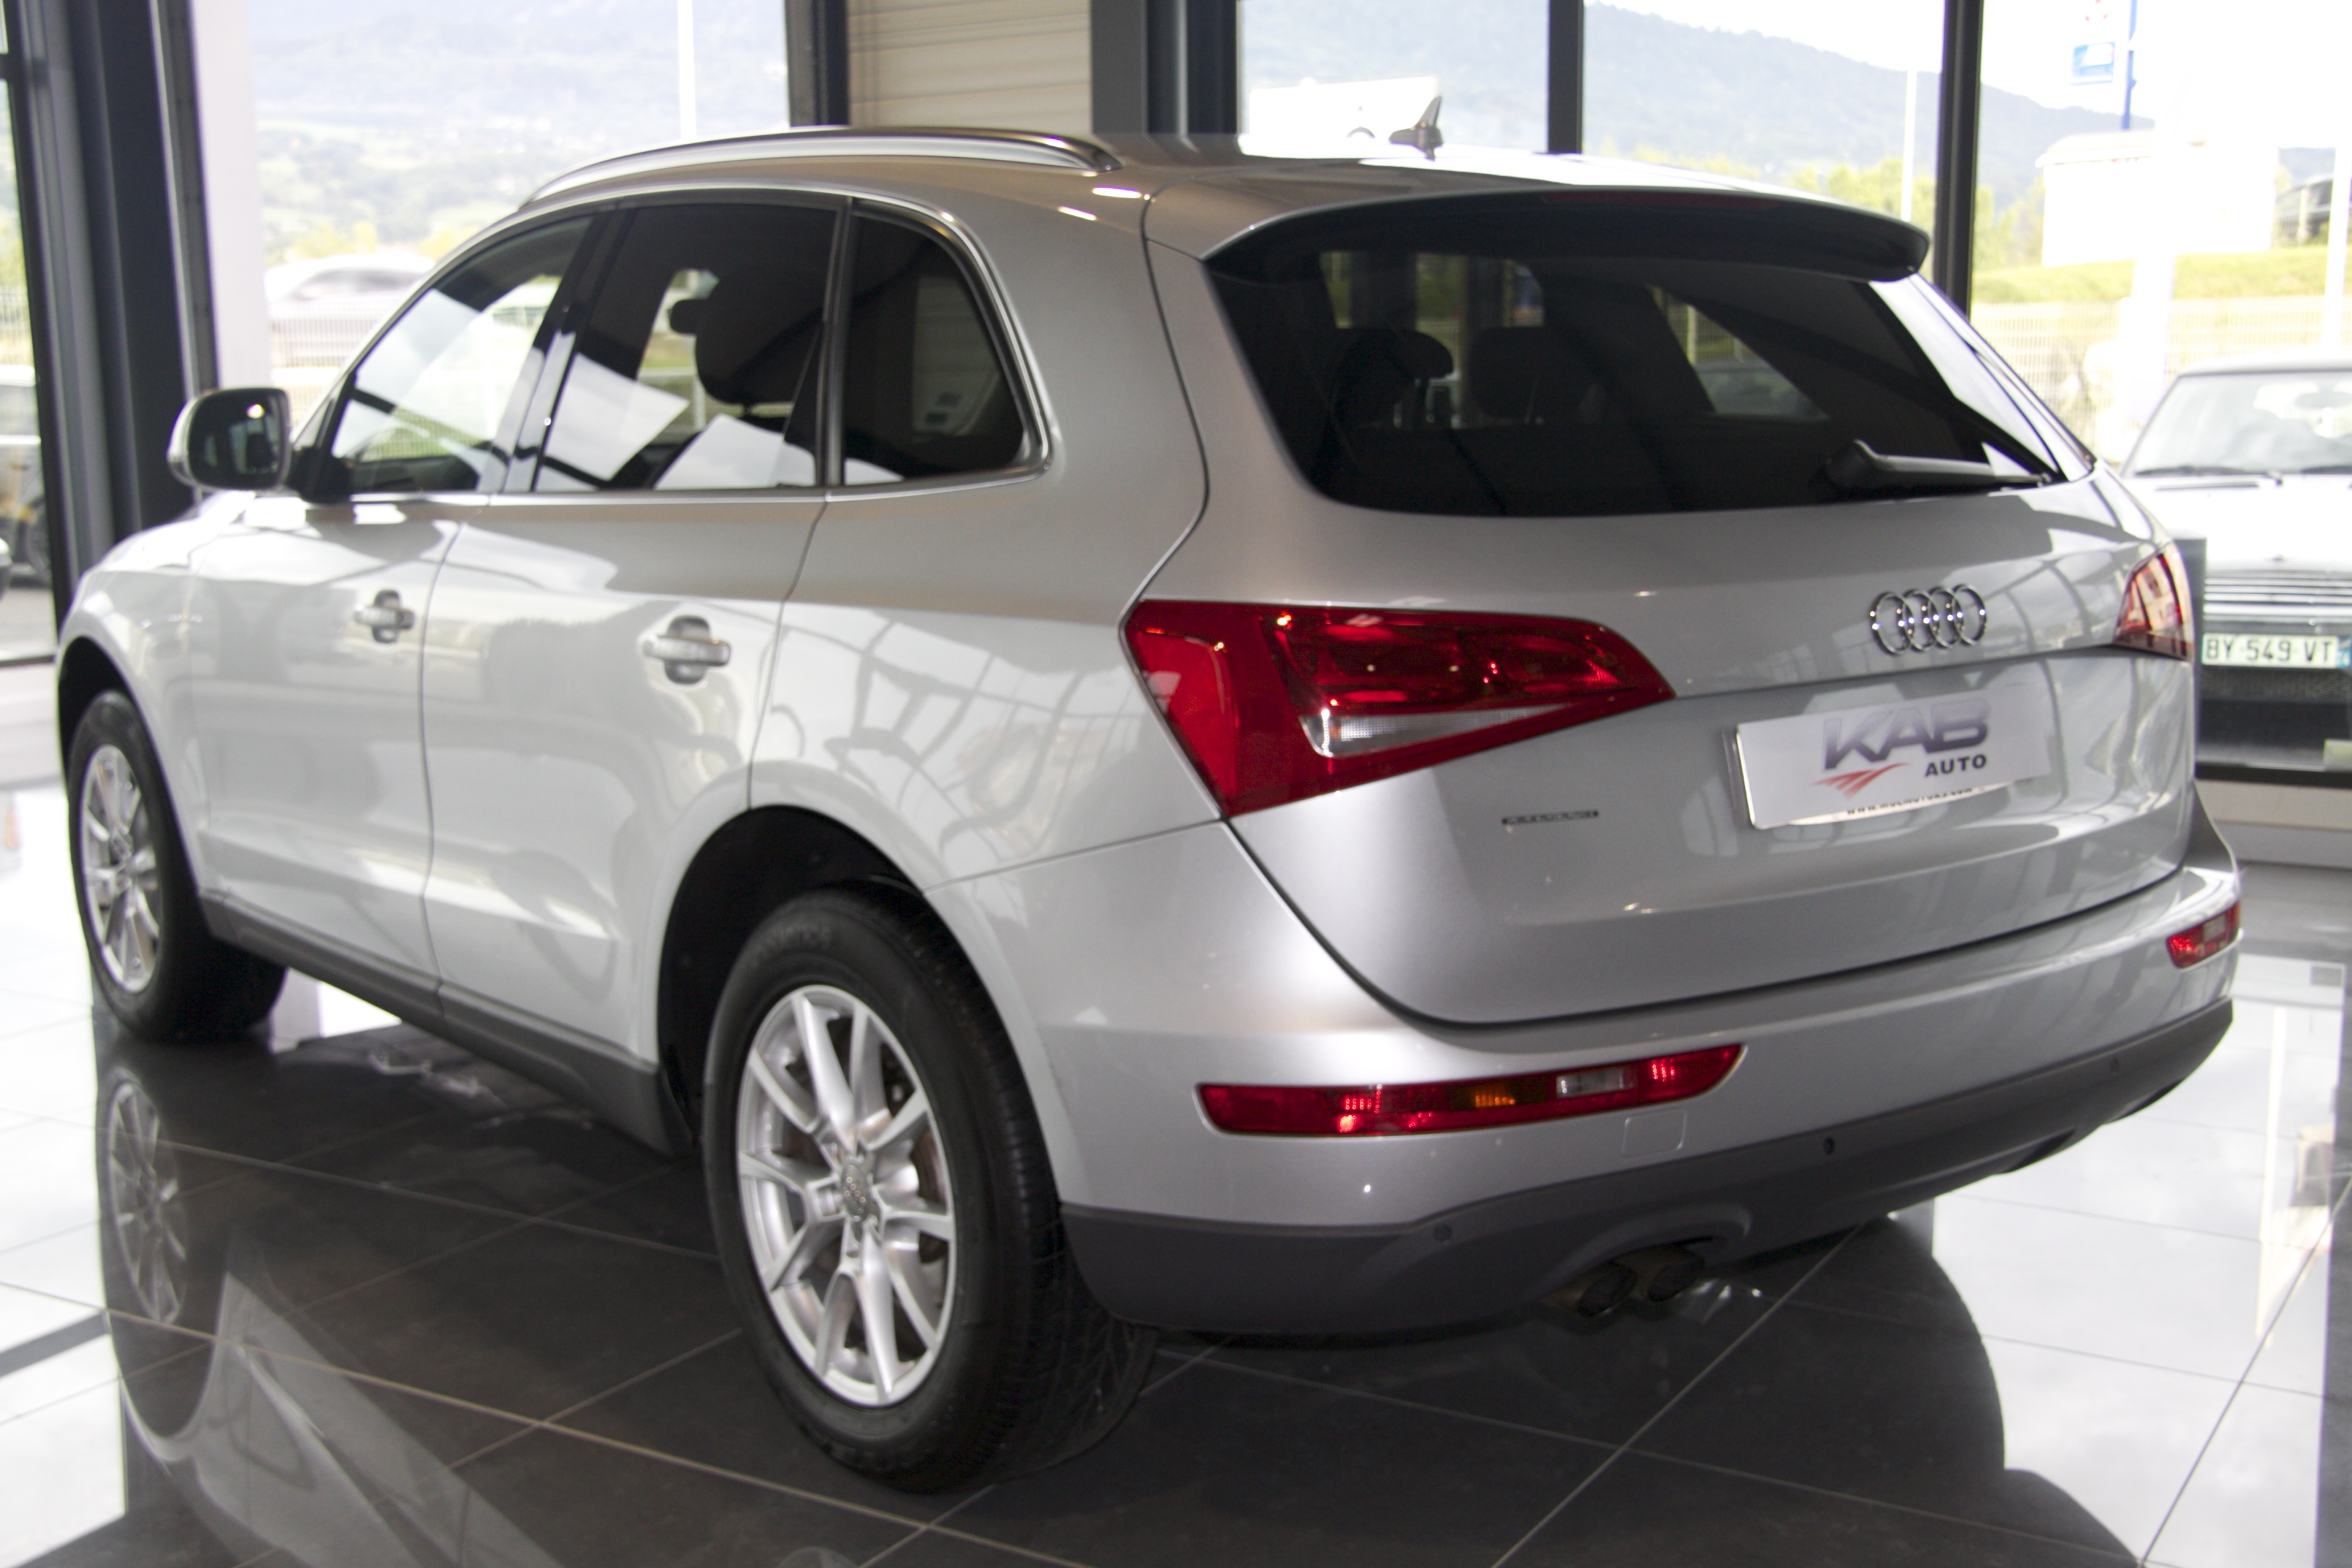 audi q5 2 0 tdi 170 dpf kab auto centre auto de borly 74 cranves sales annemasse. Black Bedroom Furniture Sets. Home Design Ideas